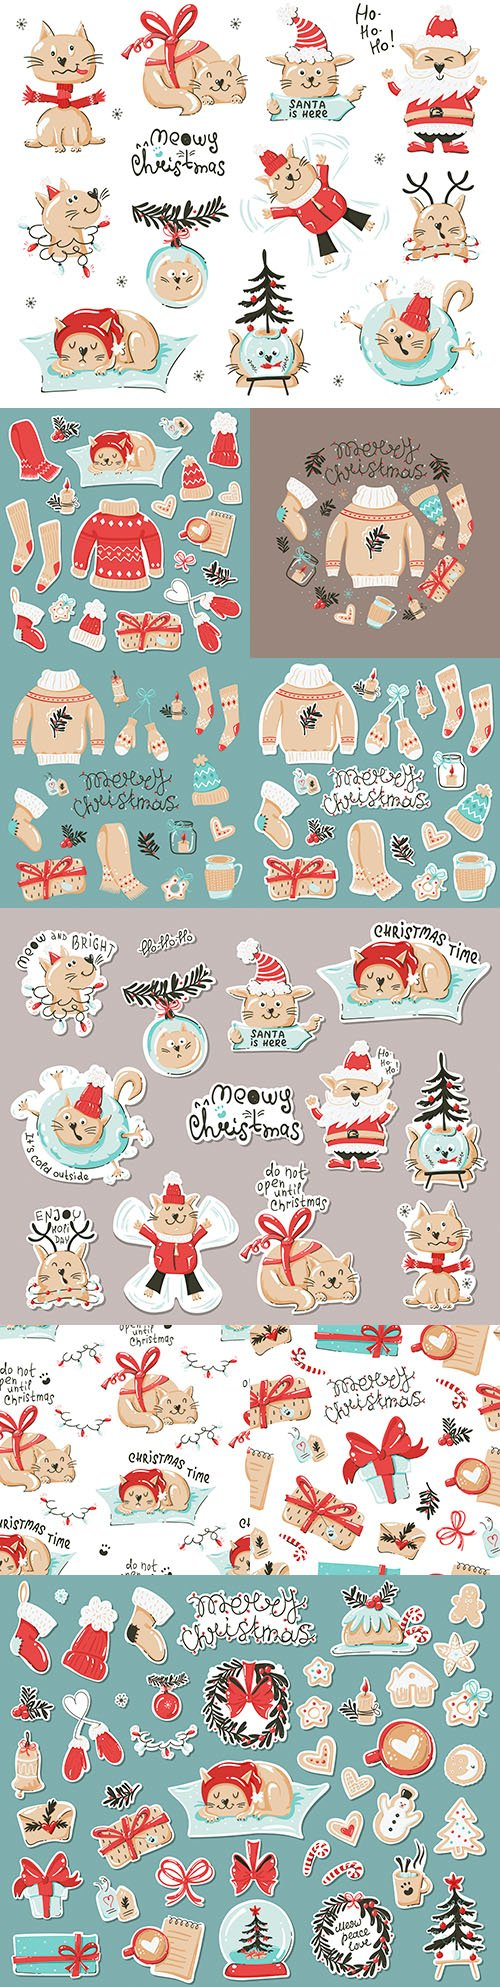 Fun animal label set with Christmas elements design